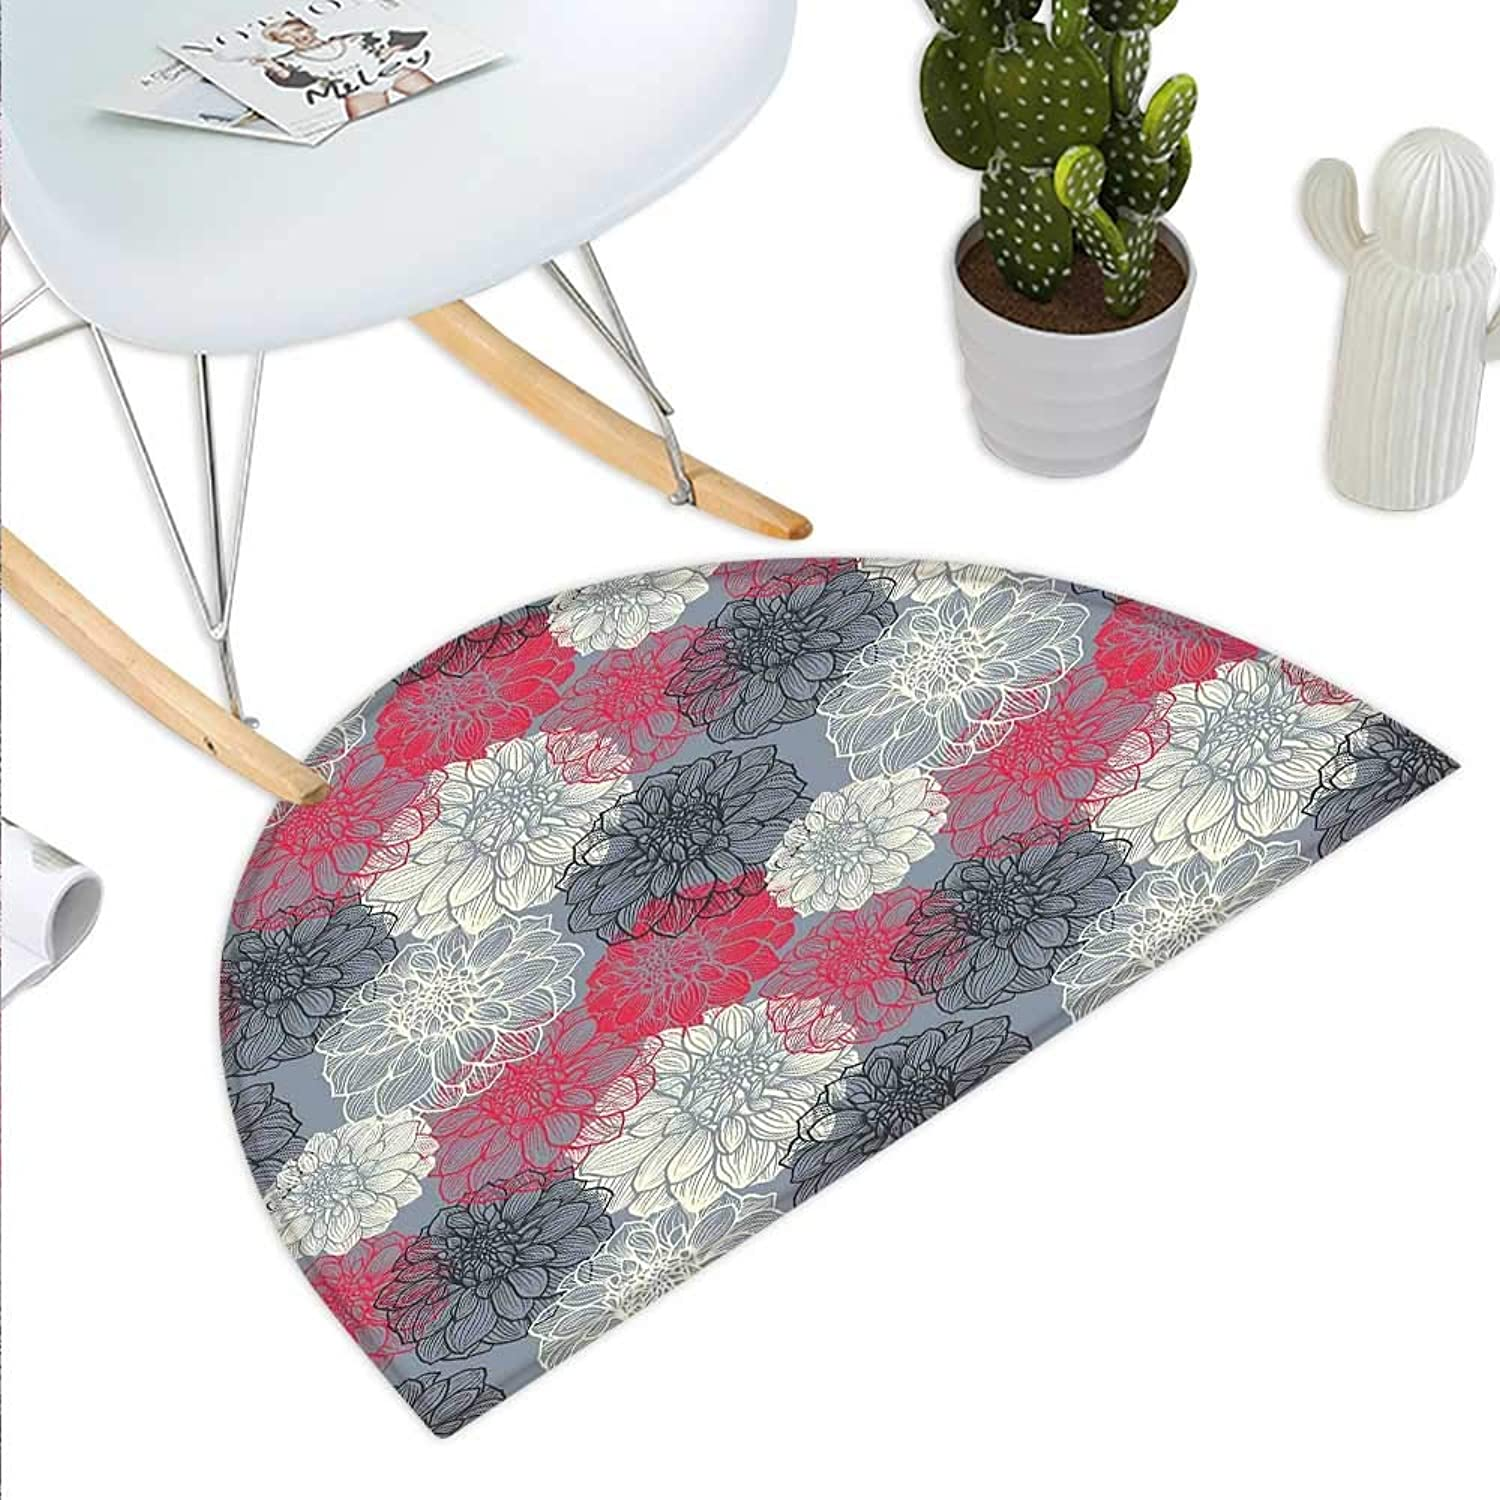 Dahlia Flower Semicircle Doormat Hand Drawn Repeating Big and Small Flowers Motif with color Element Effects Halfmoon doormats H 43.3  xD 64.9  Multicolor